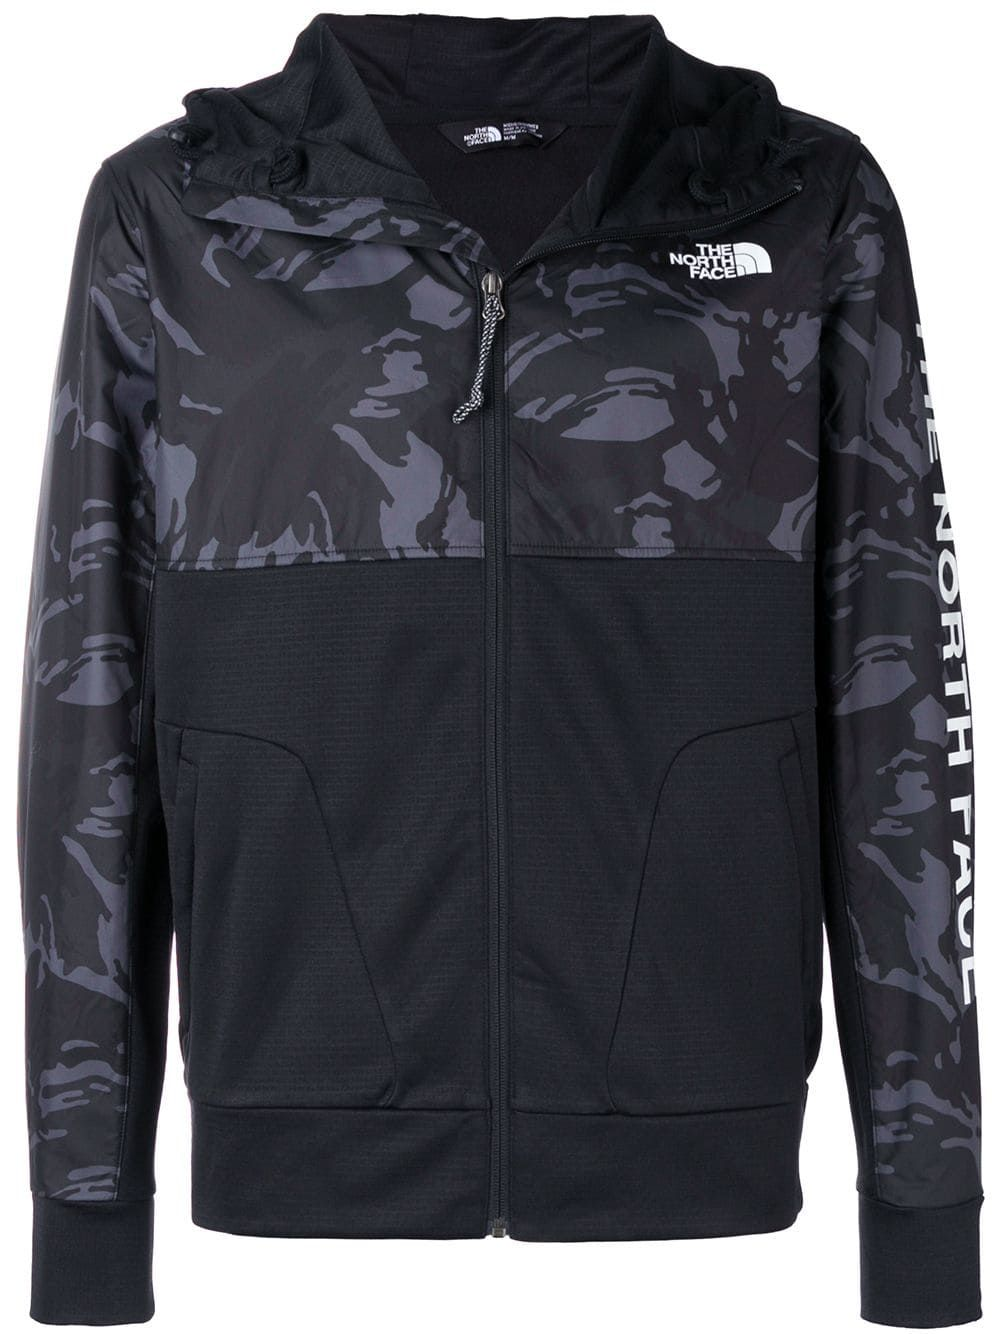 THE NORTH FACE THE NORTH FACE TRAIN N LOGO OVERLAY JACKET - BLACK.   thenorthface  cloth e3ecd7b387f